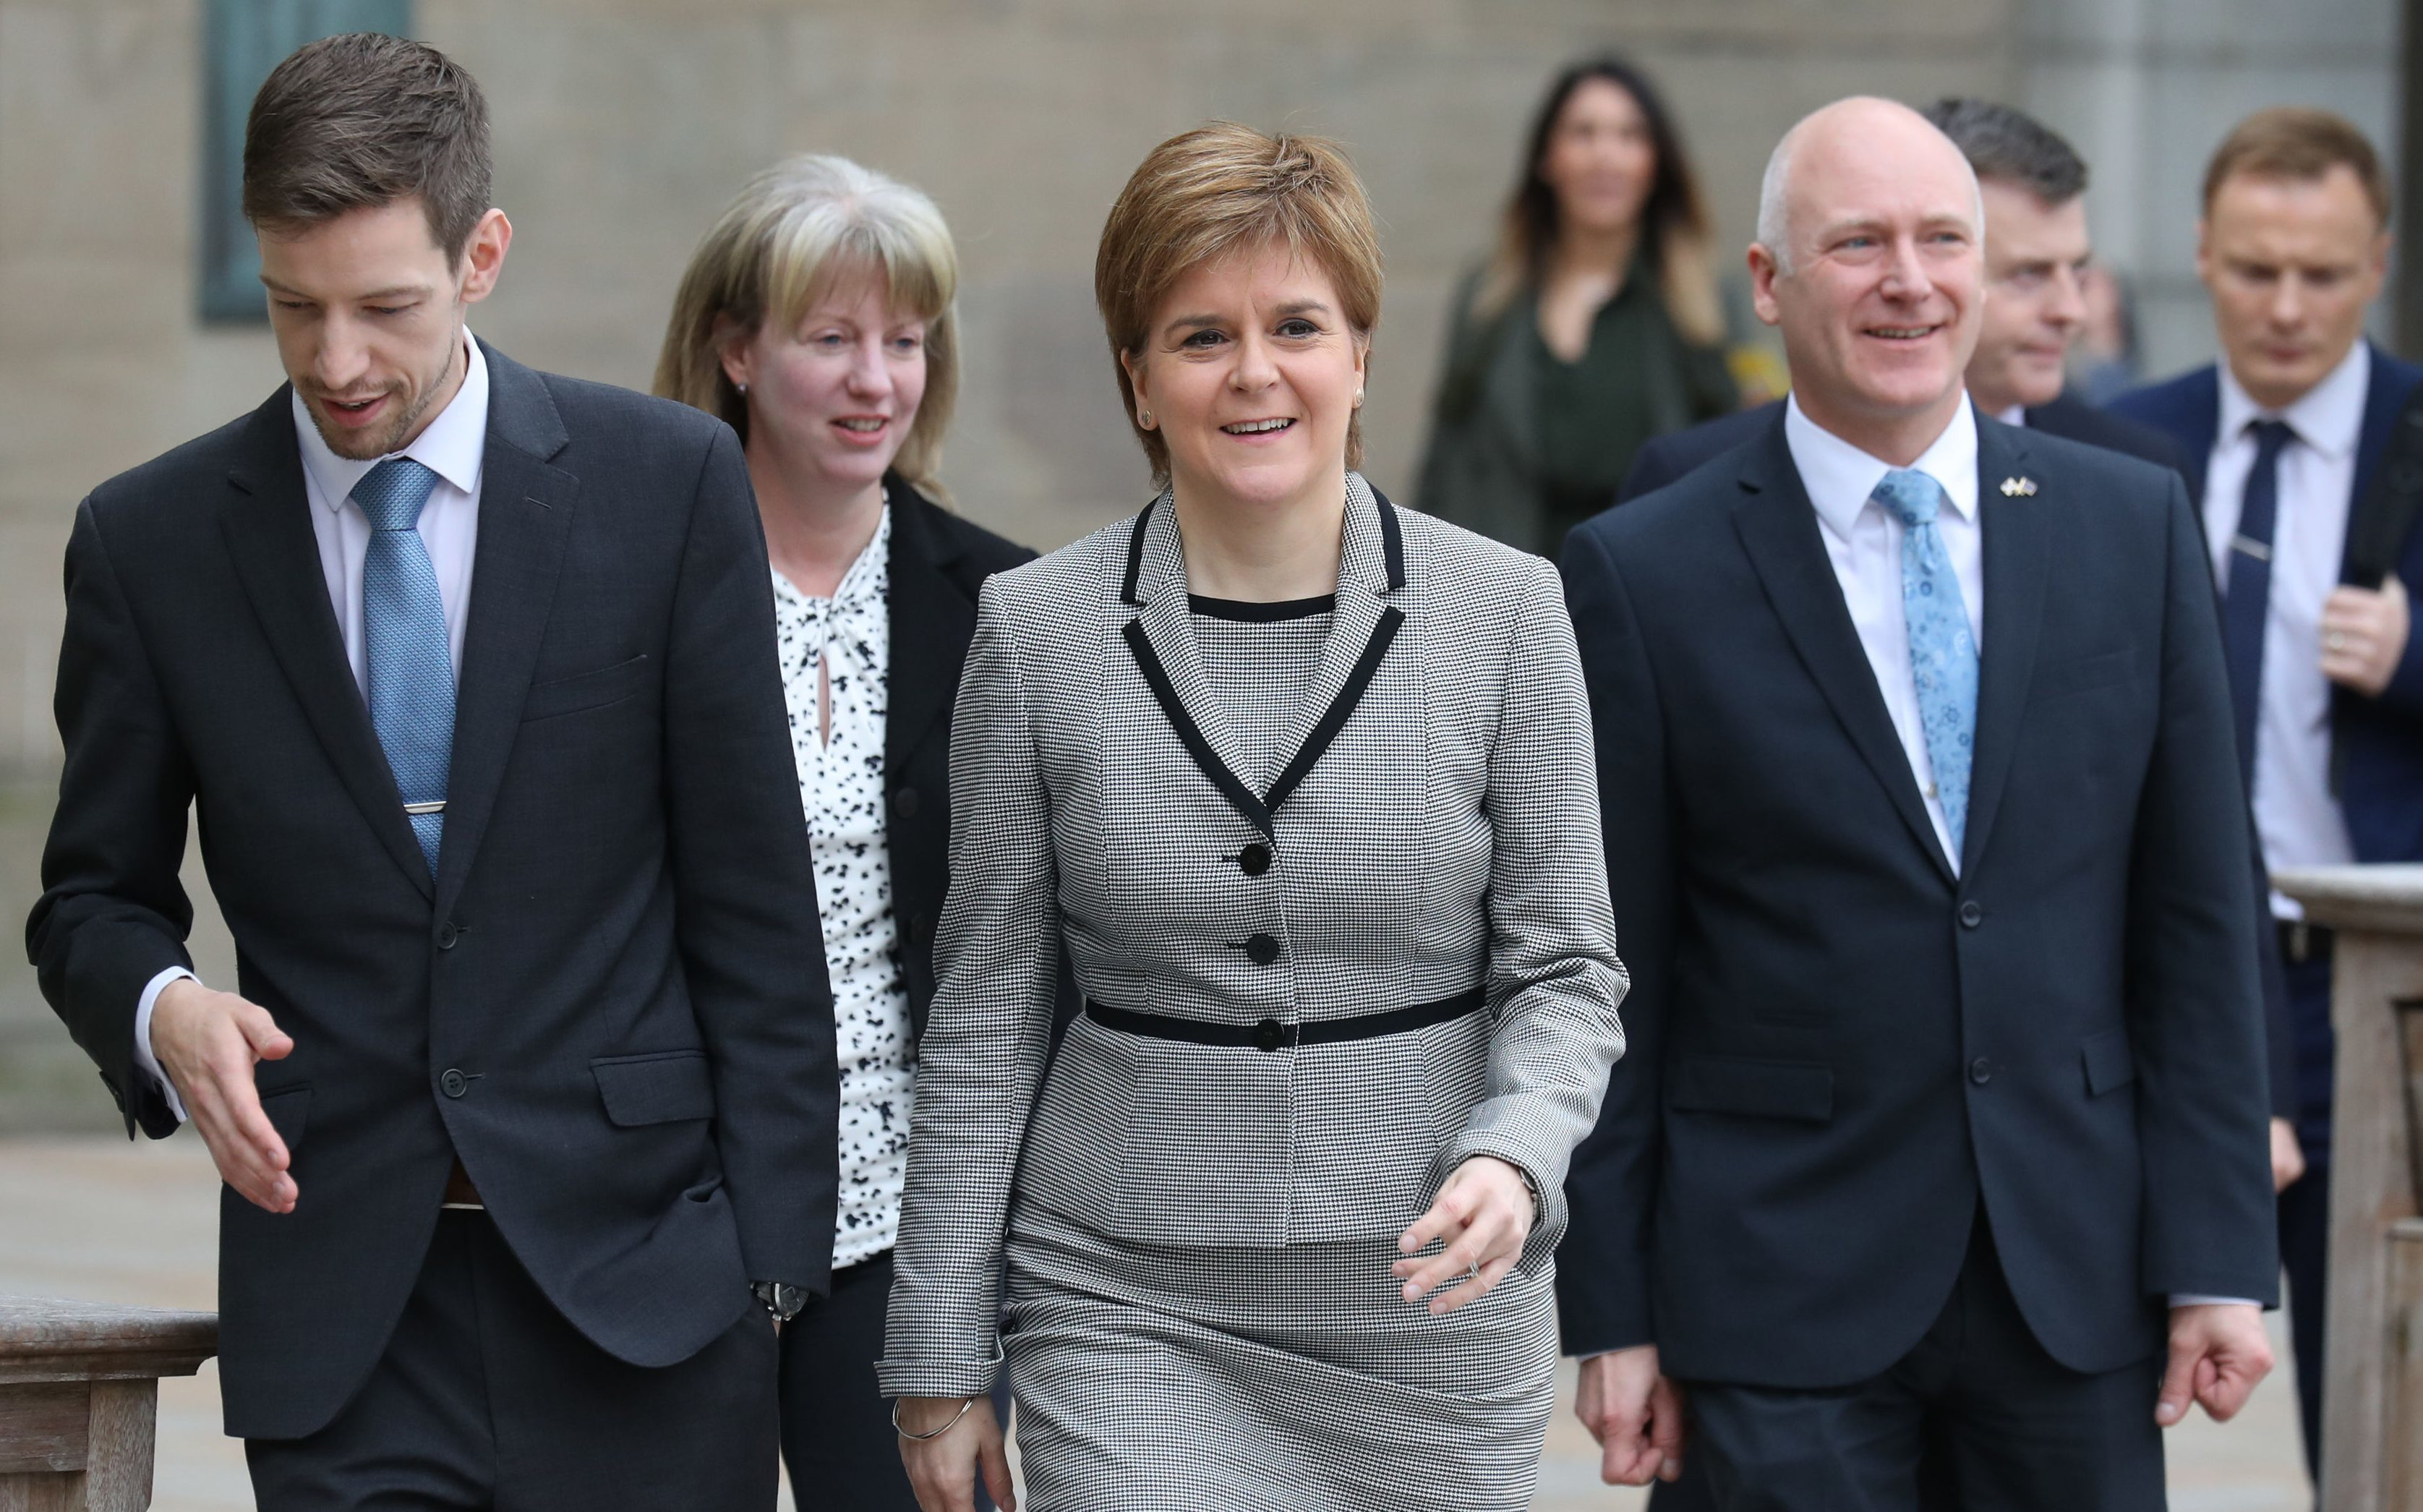 First Minister Nicola Sturgeon revealed Dundee would host the social security agency's headquarters last year.